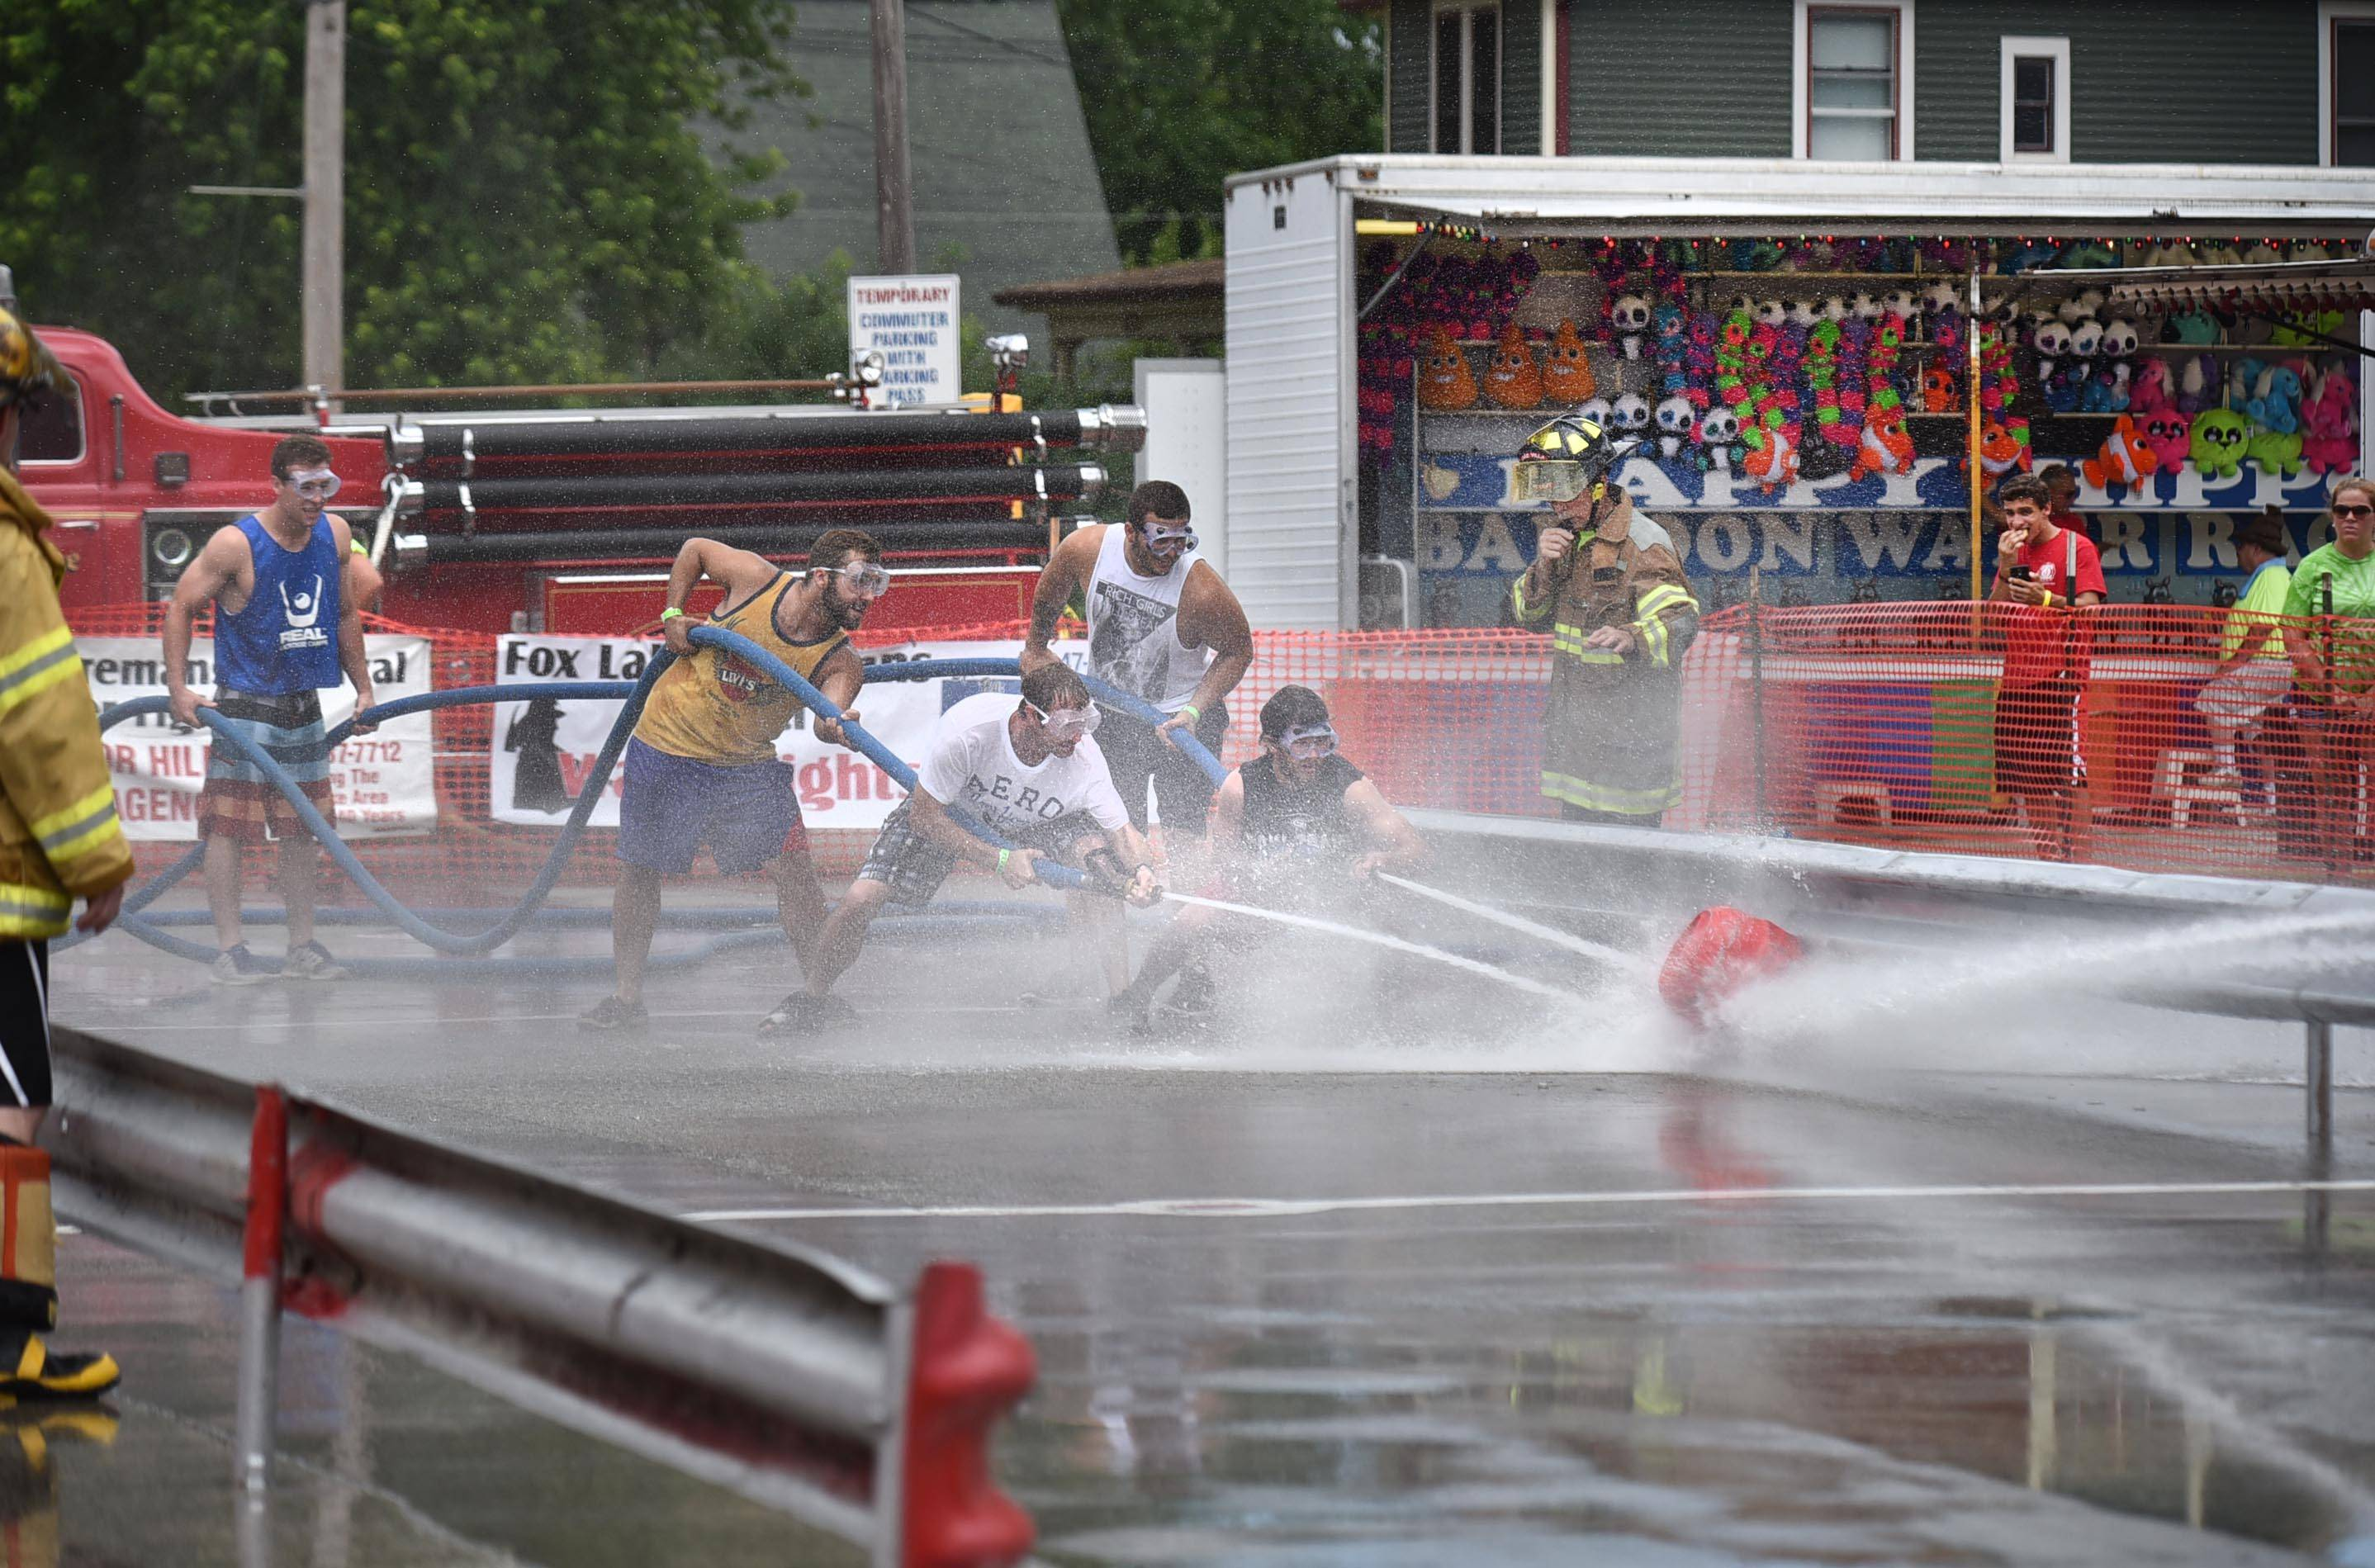 The Fox Lake Fireman's Festival returns this weekend with water fights and more.